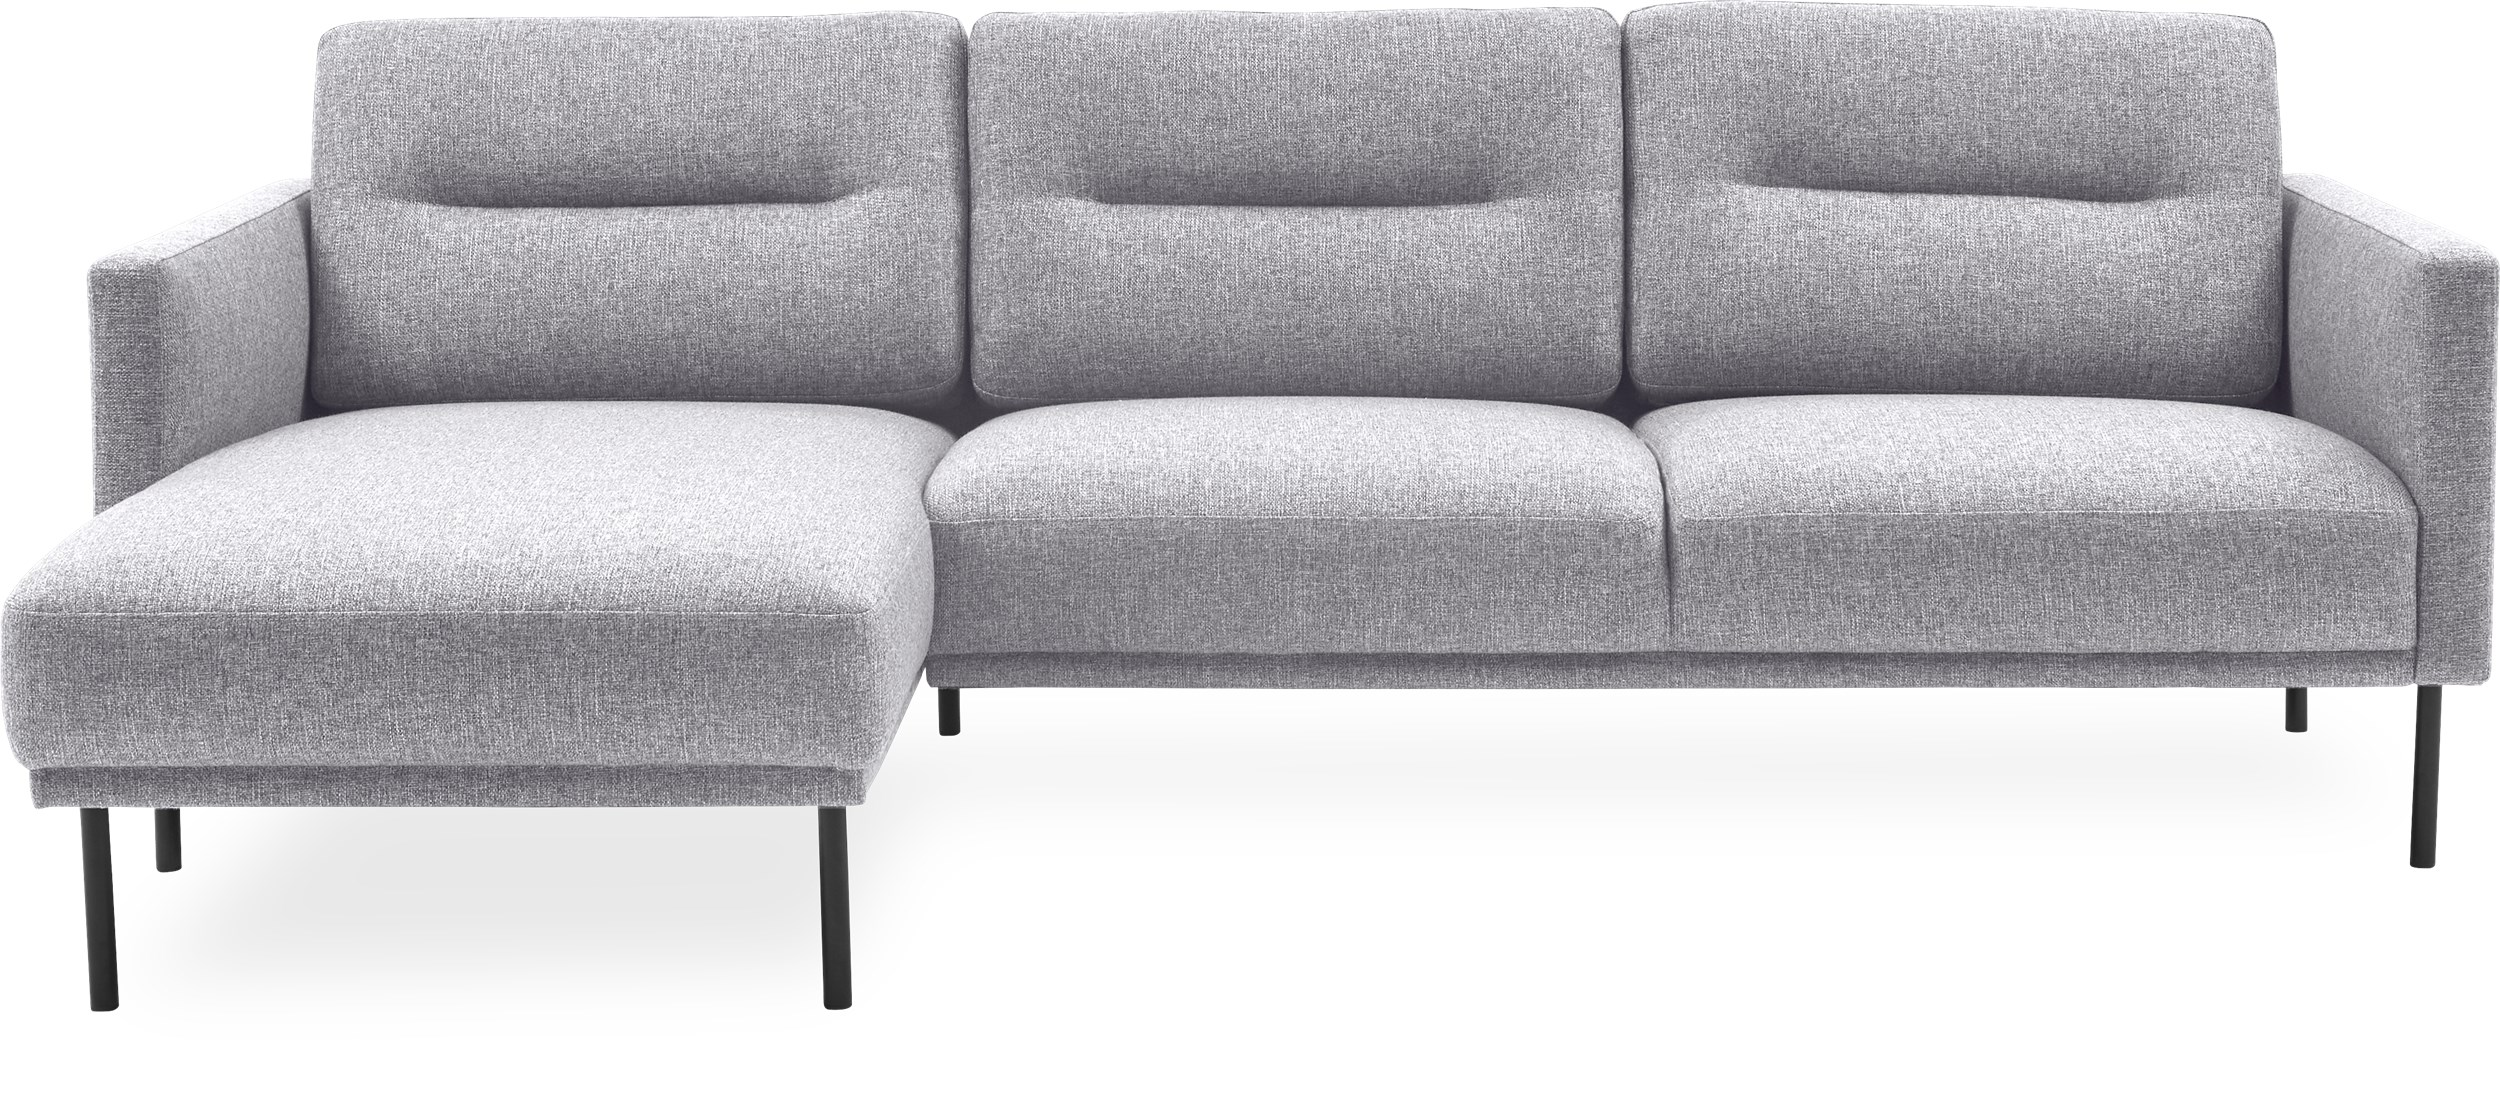 Larvik Sofa med chaiselong - Hampton 372 Light grey stof og ben i sortlakeret metal